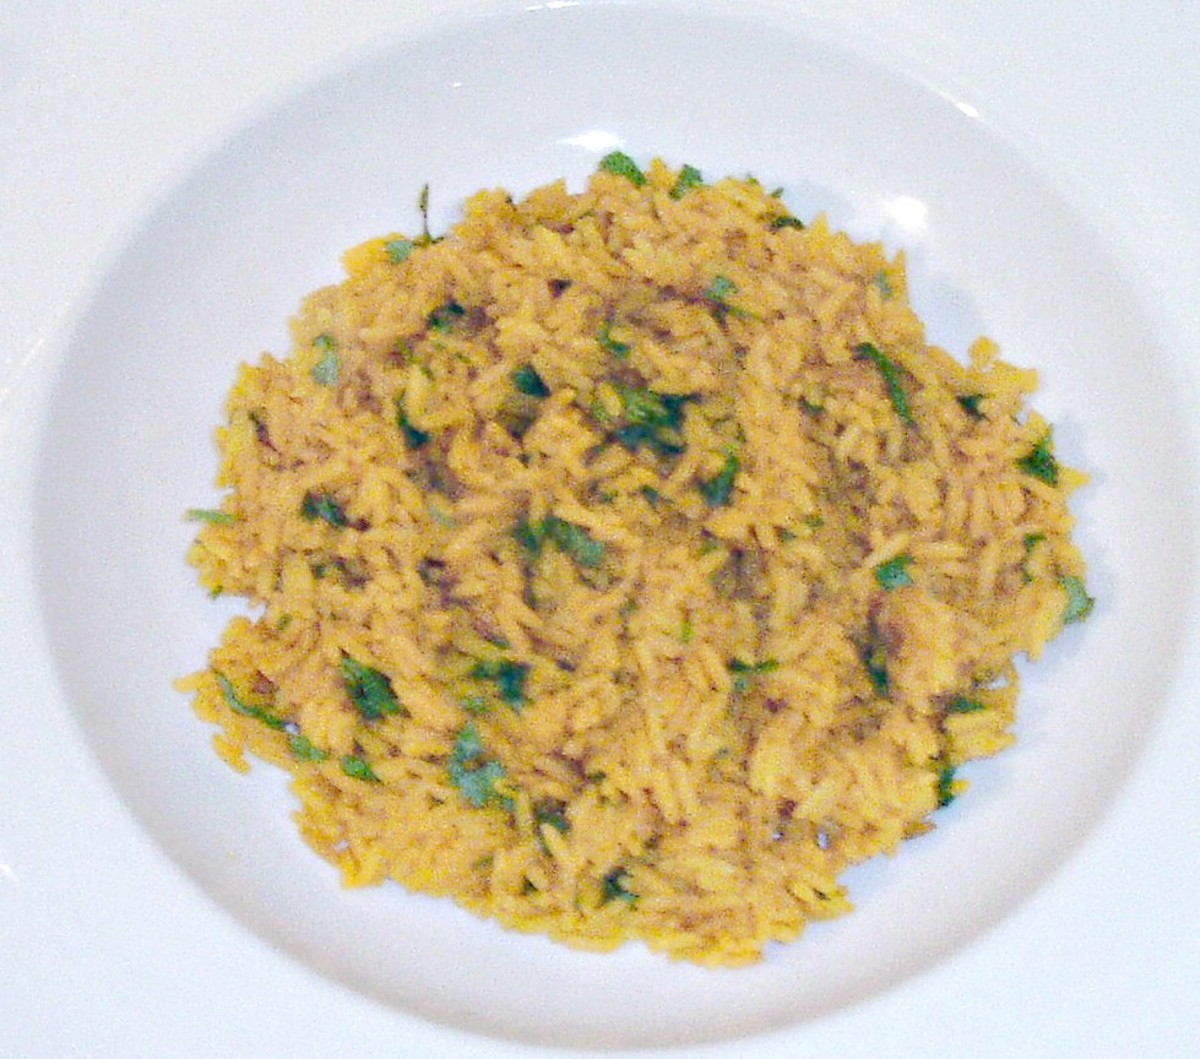 Turmeric rice is arranged to serve as a bed for the ostrich